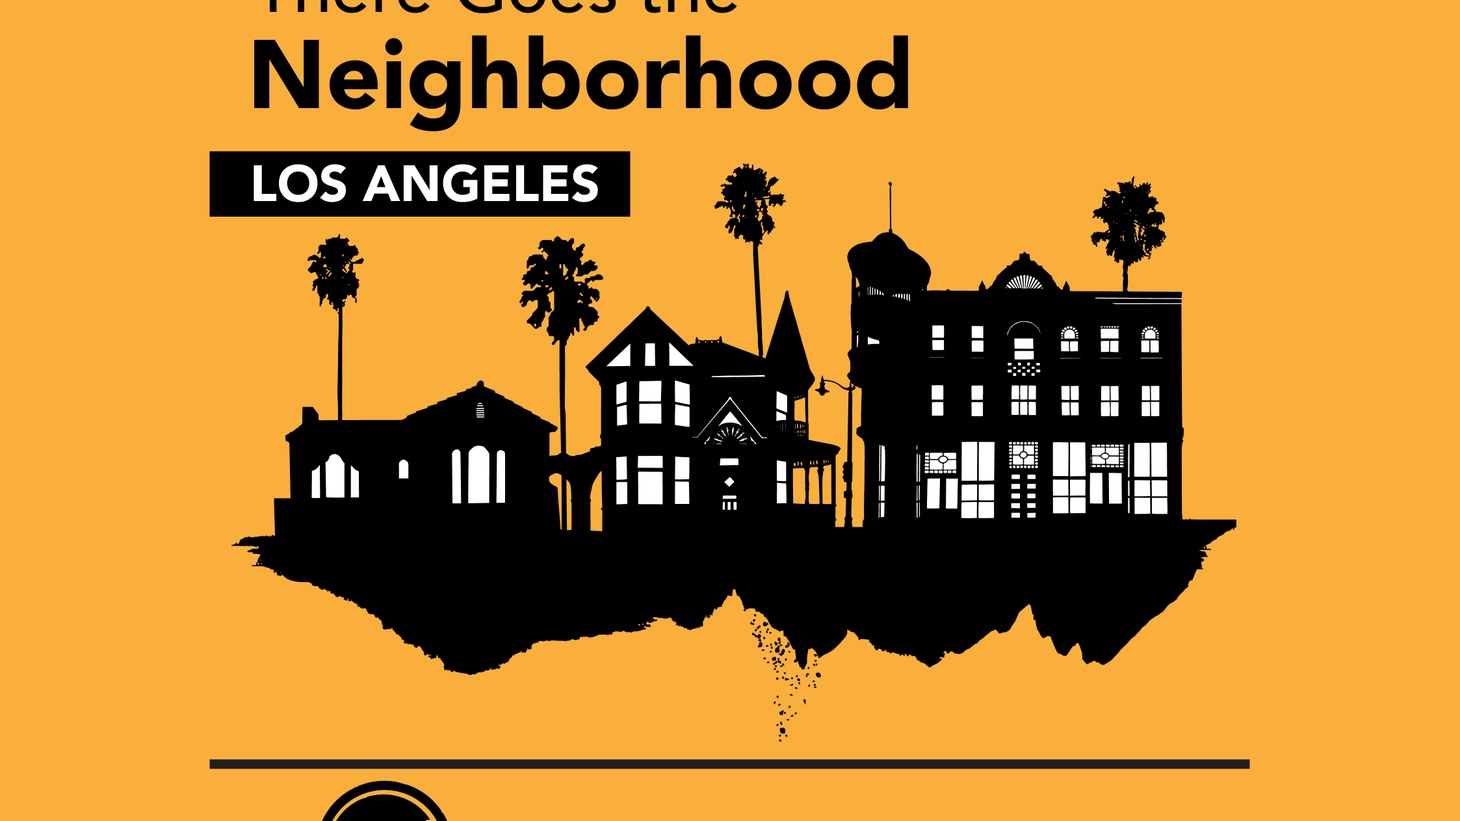 KCRW's Bob Carlson talks to reporter Anna Scott about the second season of There Goes the Neighborhood, which is about Los Angeles's identity – and its housing crisis.